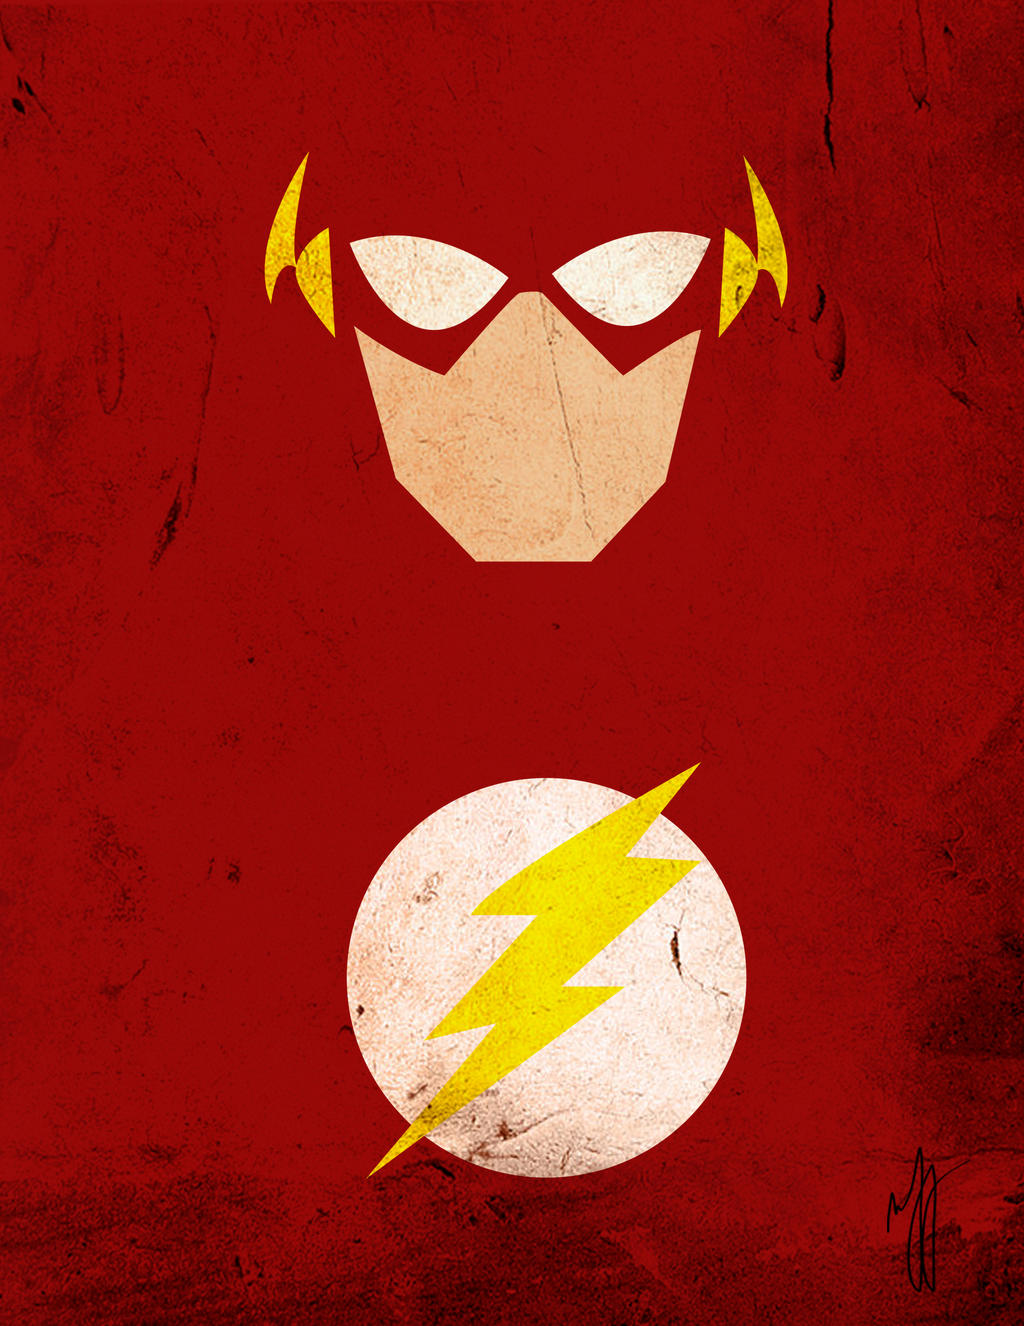 Minimalist art flash by chrynatsuki on deviantart for Minimal artiste